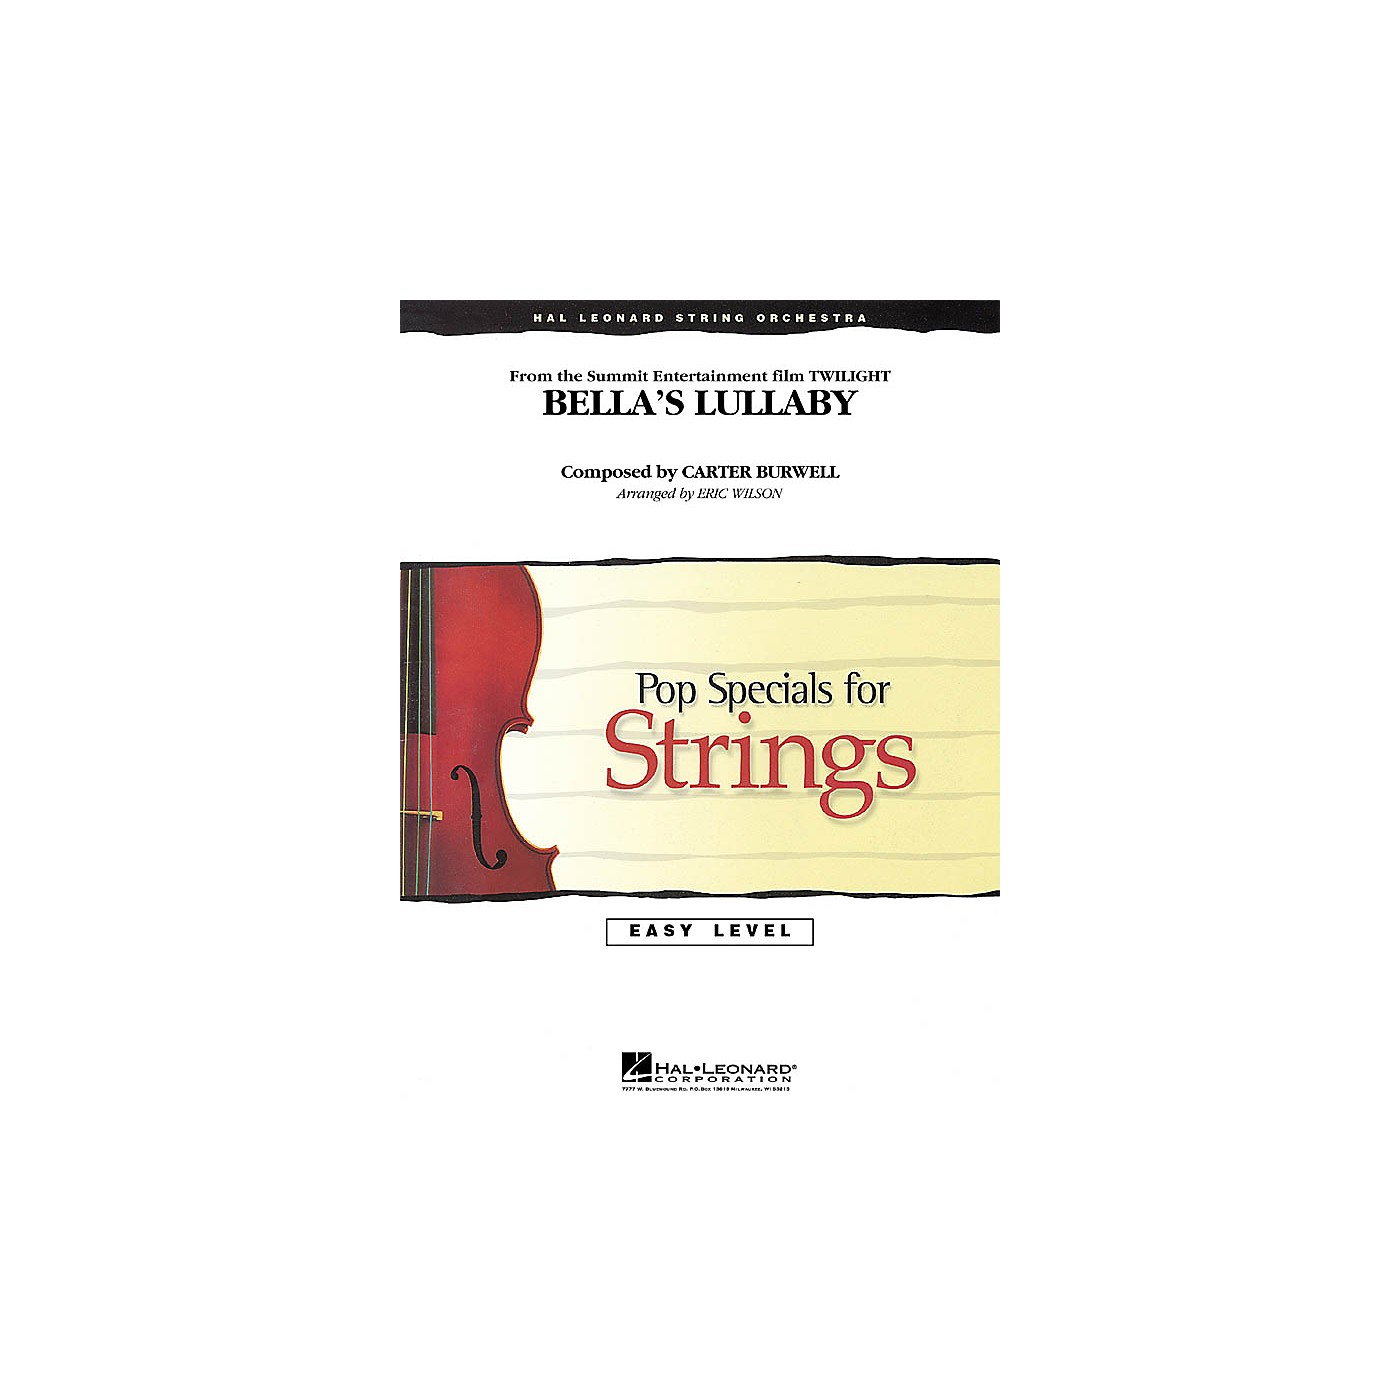 Hal Leonard Bella's Lullaby (from Twilight) Easy Pop Specials For Strings Series Arranged by Eric Wilson thumbnail